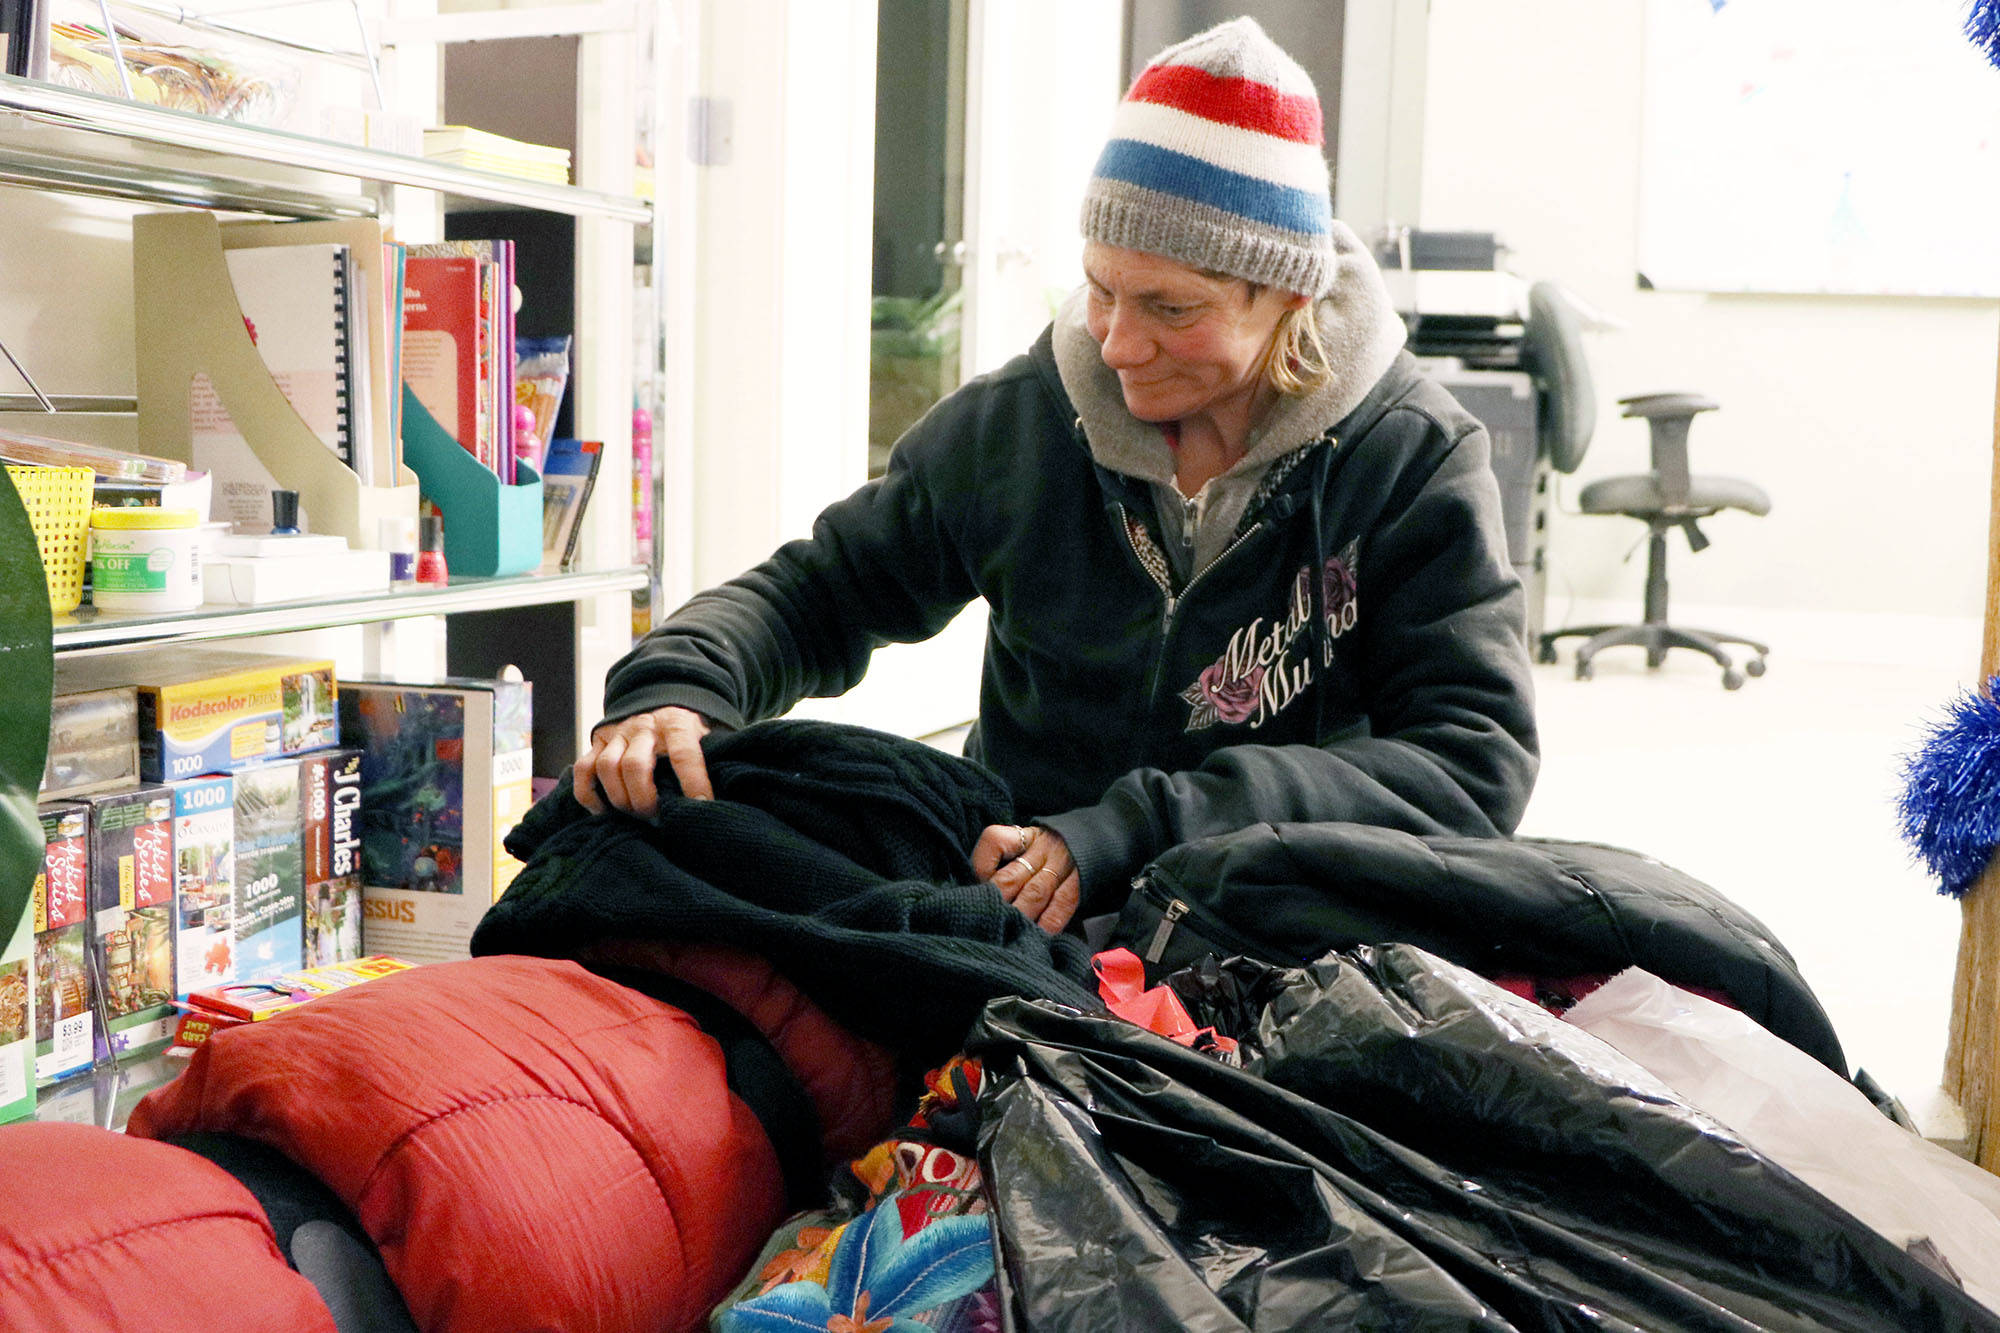 Kathy Schuster, 45, sorts some of her belongings in the South Okanagan Women In Need Society's SAFExst space at an unspecified location, where she gets a bit of warmth and can stock up on some basic supplies. For Schuster, a loss of supplies is a serious personal security matter.                                Dustin Godfrey/Western News